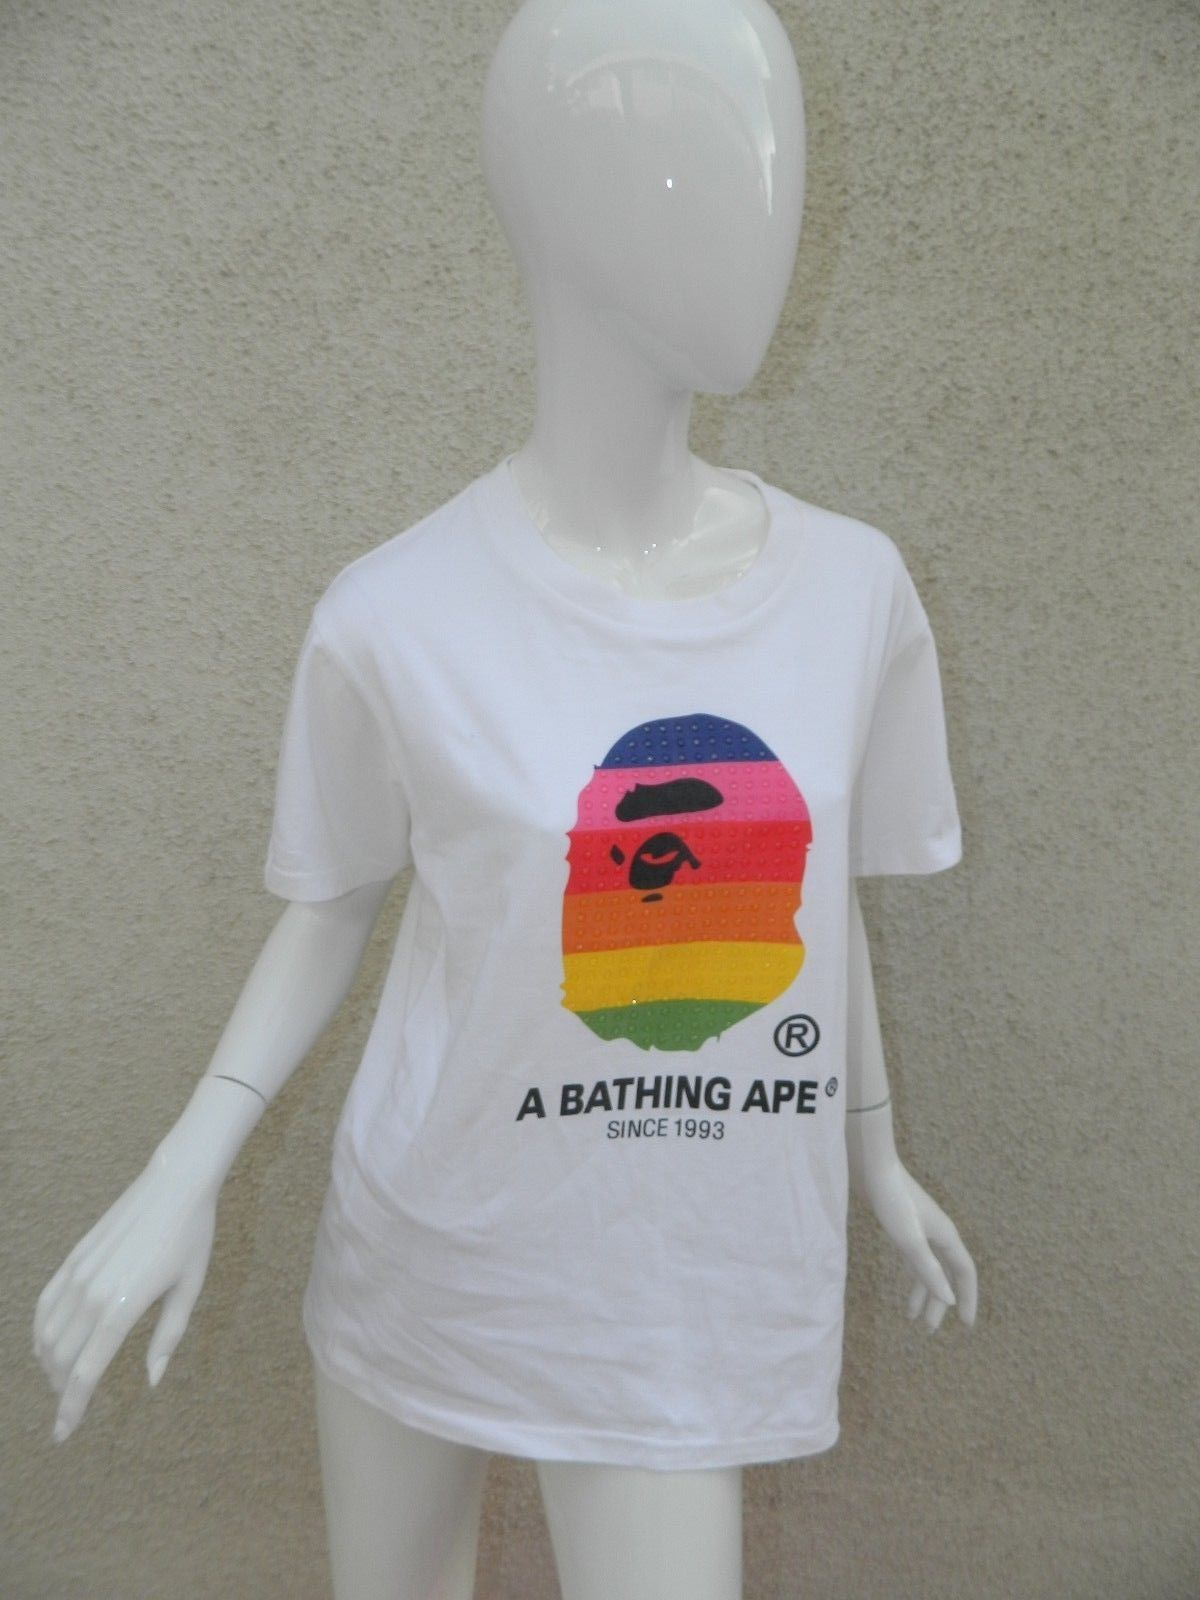 dc3d4a9b 57. 57. Previous. Bape A Bathing Ape T-shirt White Rainbow Face Logo Size  Medium · Bape A Bathing Ape T-shirt ...